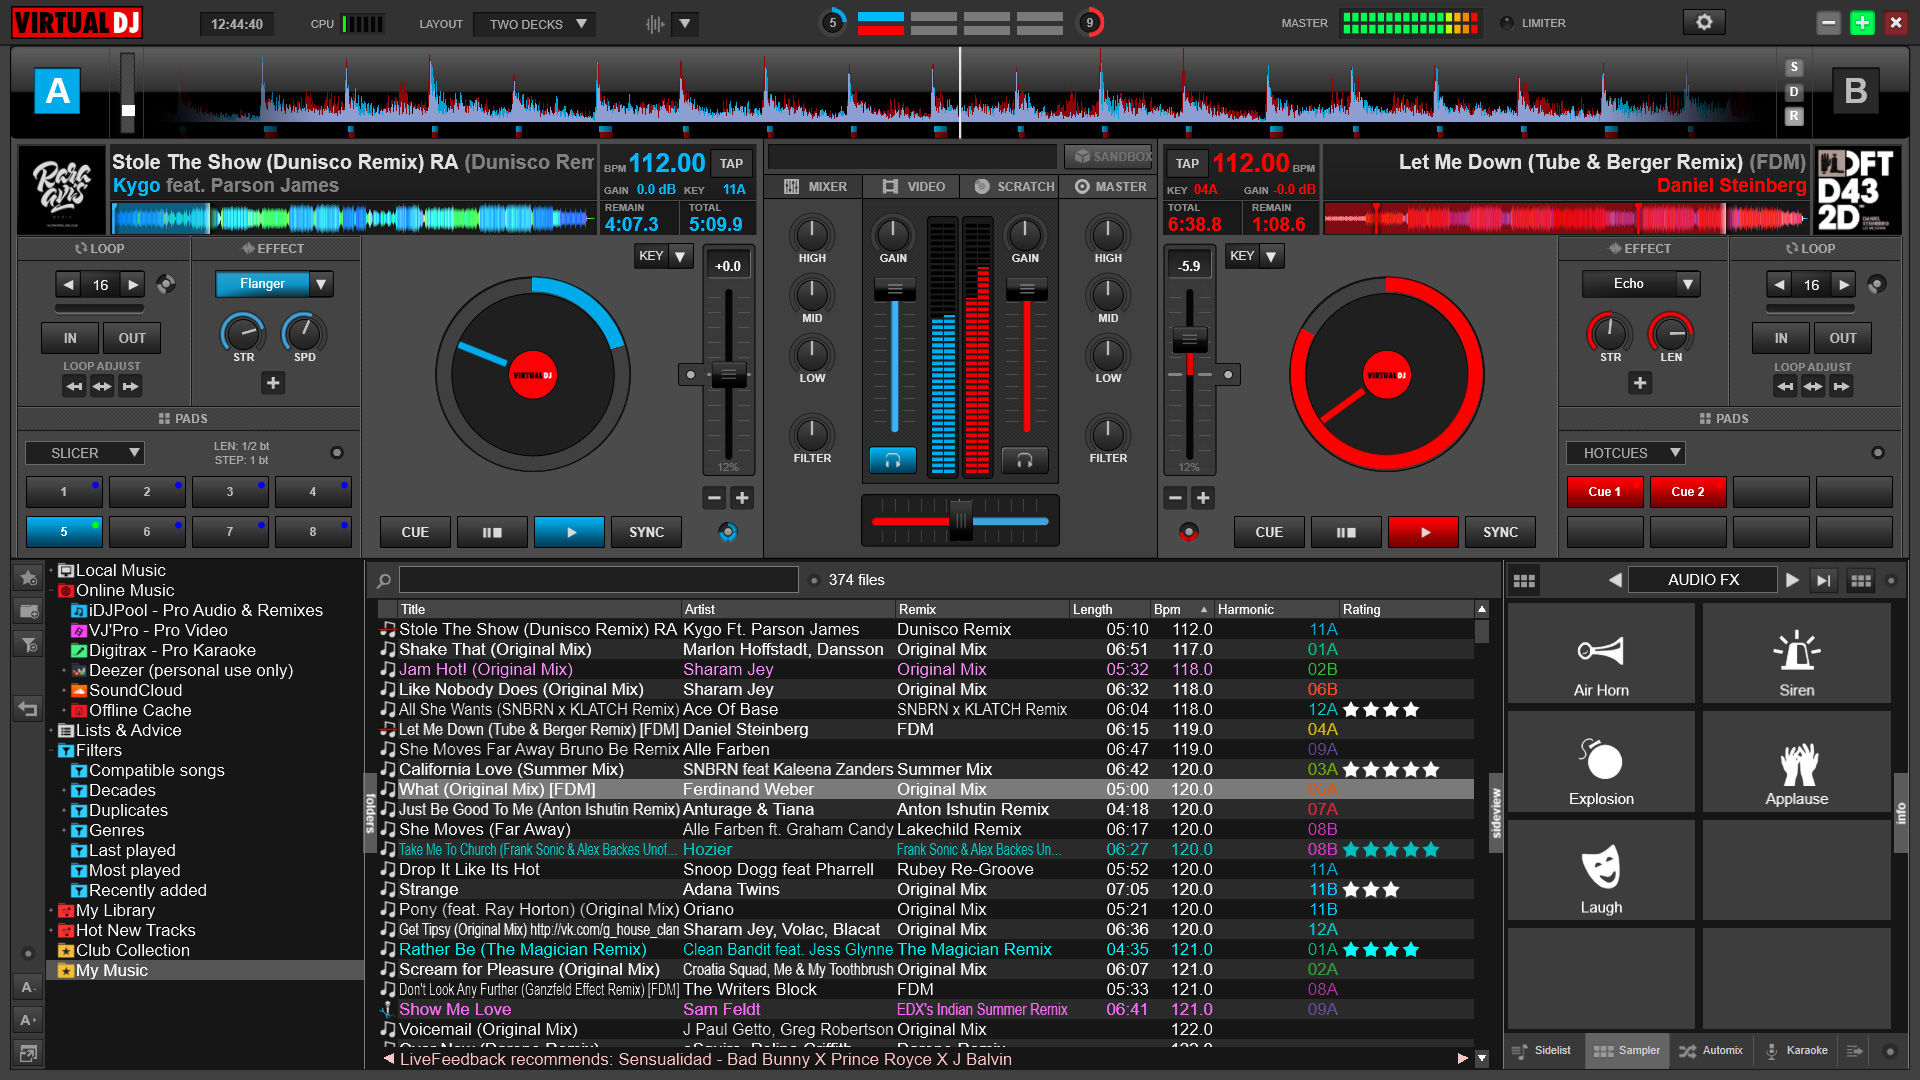 virtual dj free download full version 2012 with crack software